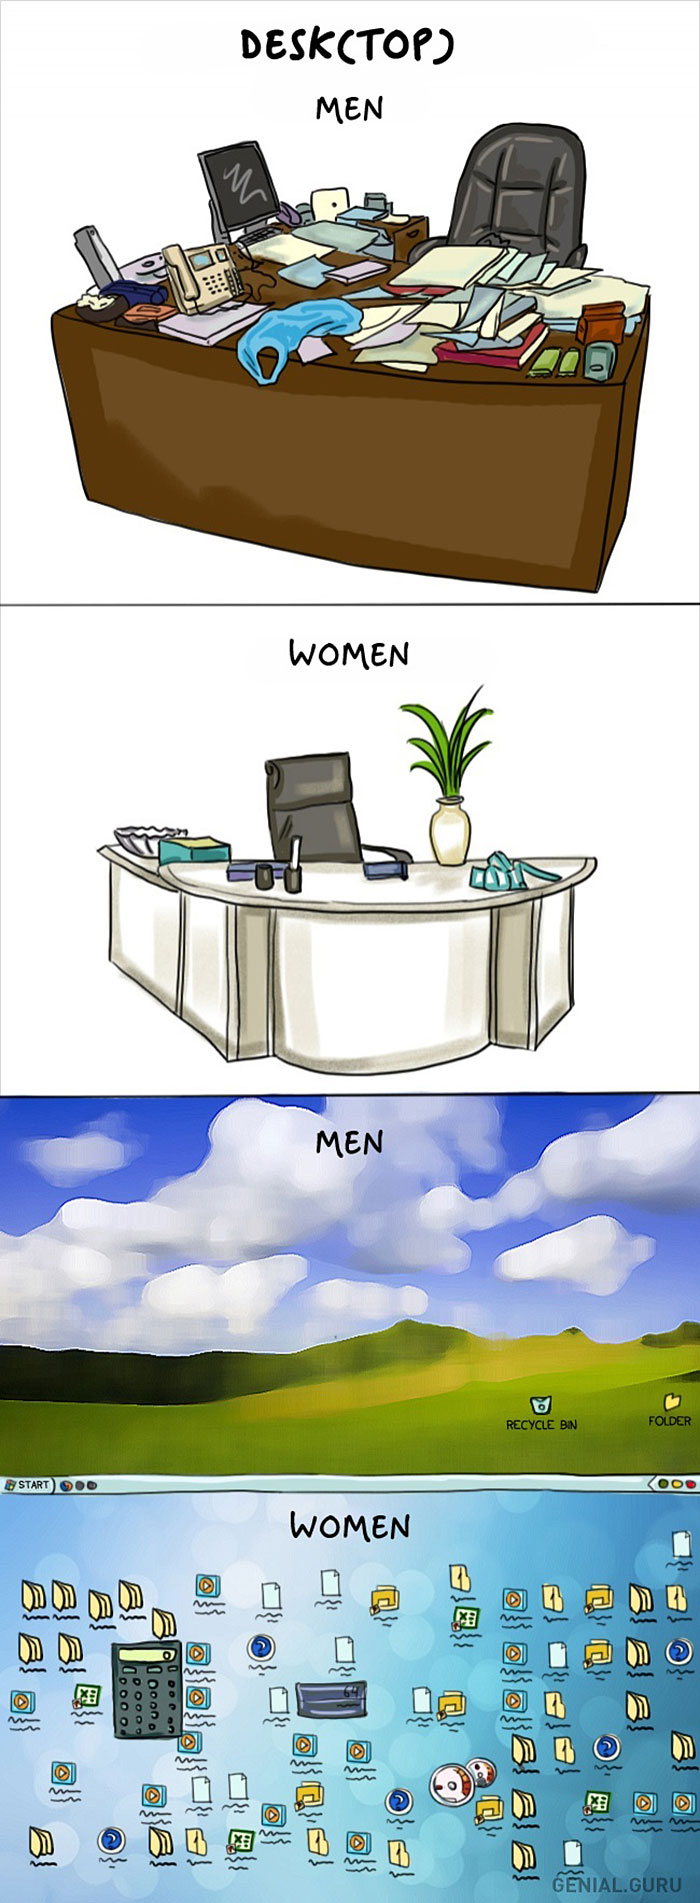 men-women-differences-comic-bright-side-151__700